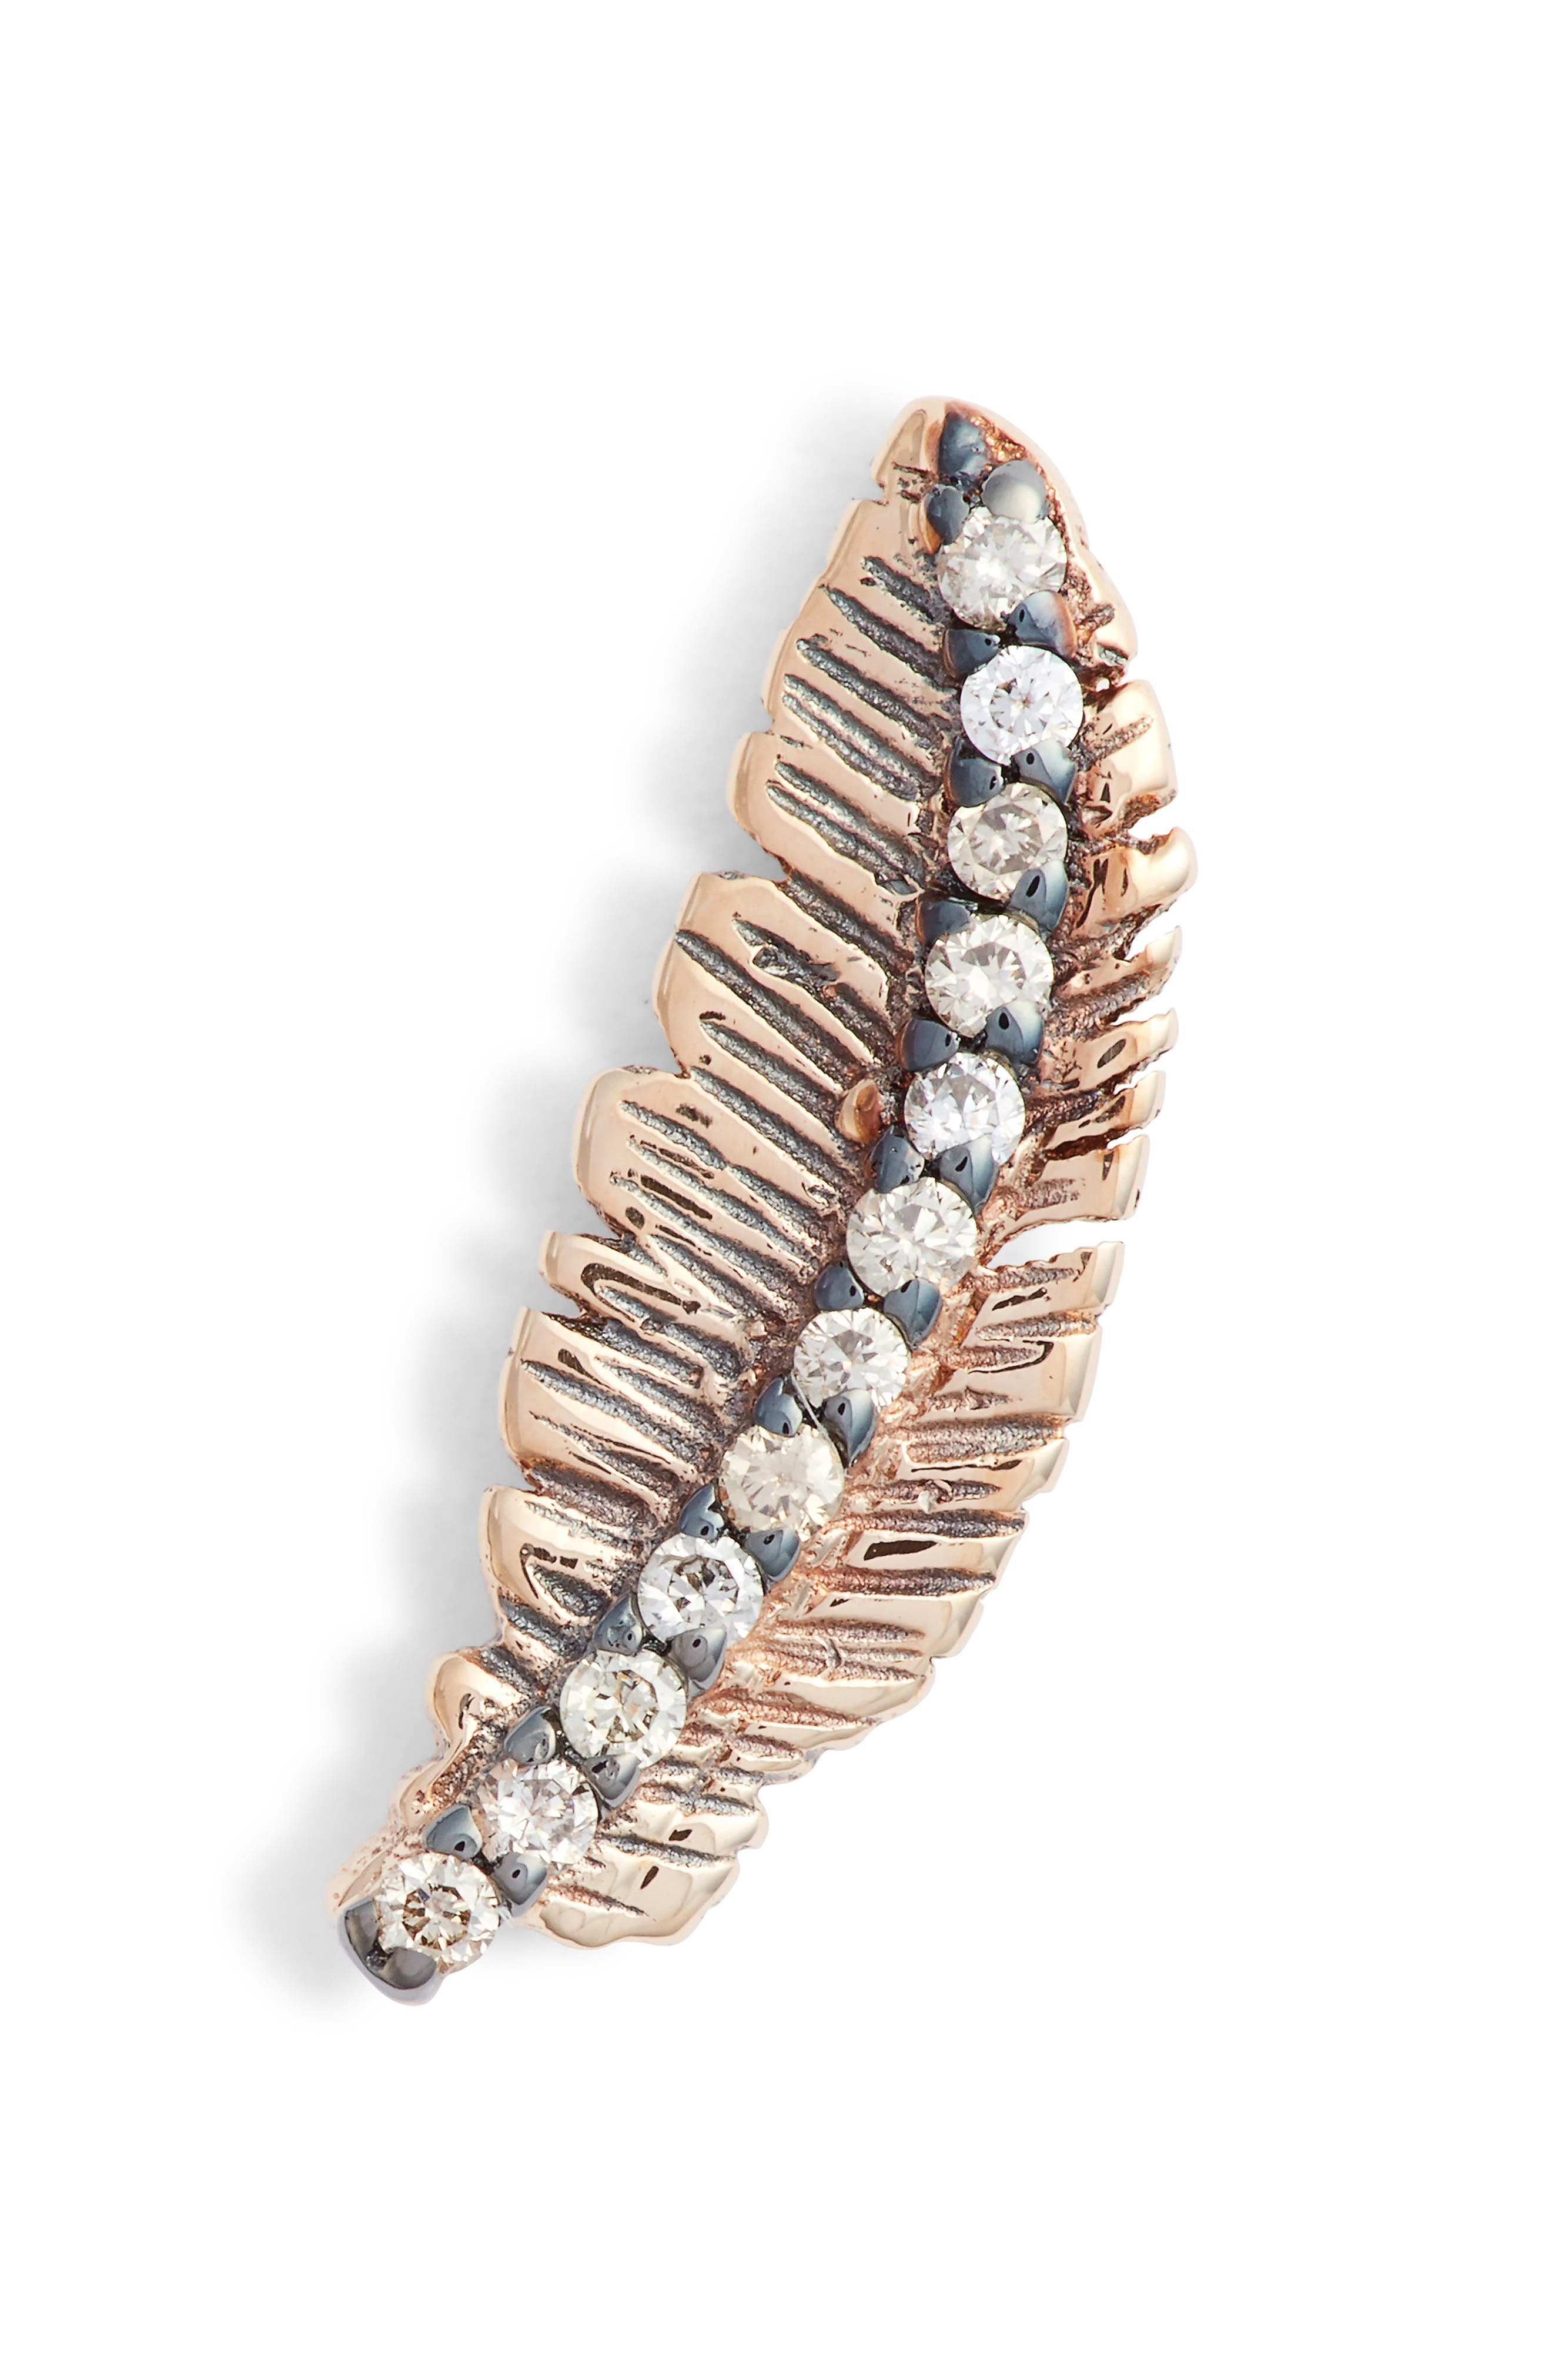 KISMET BY MILKA, Feather Champagne Diamond Earring, Main thumbnail 1, color, ROSE GOLD/ DIAMOND